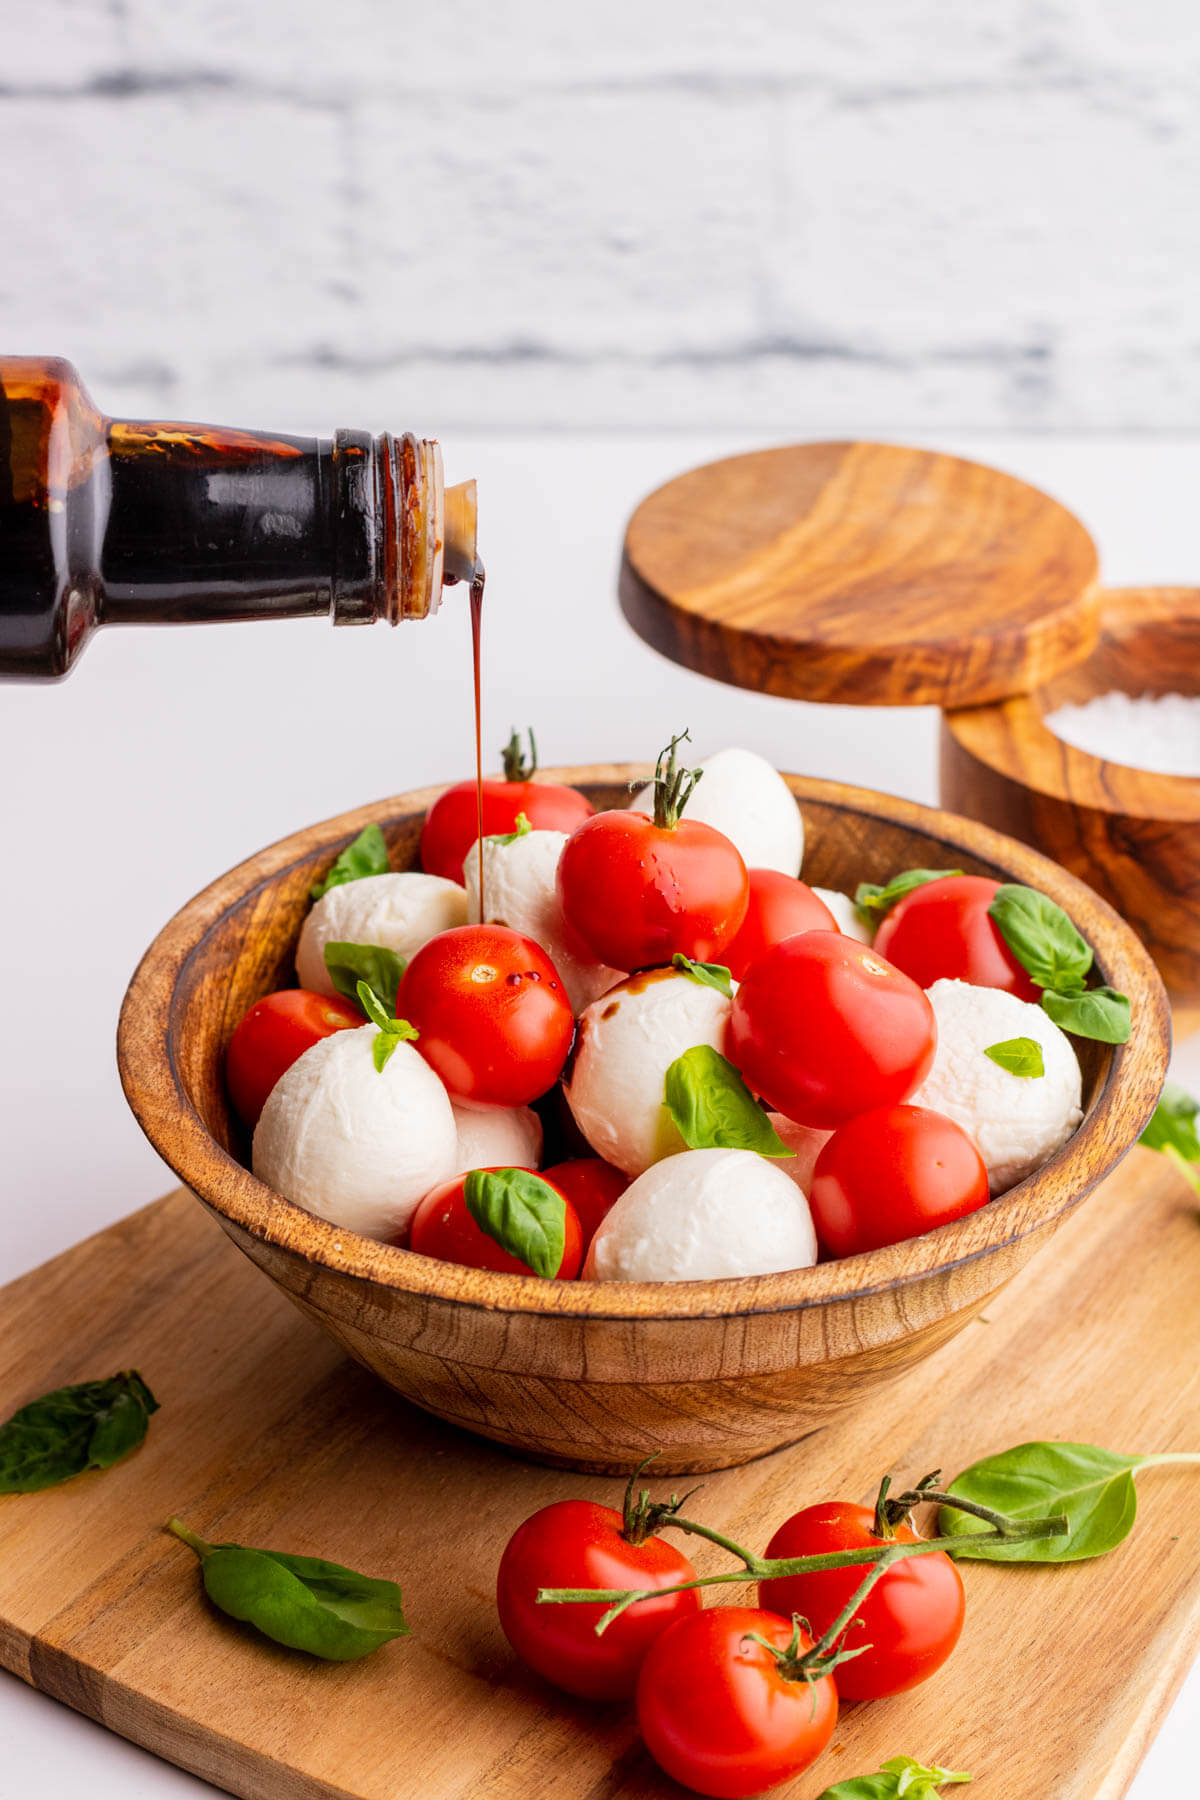 Balsamic vinegar reduction being poured over a red and white Cherry tomato caprese salad.